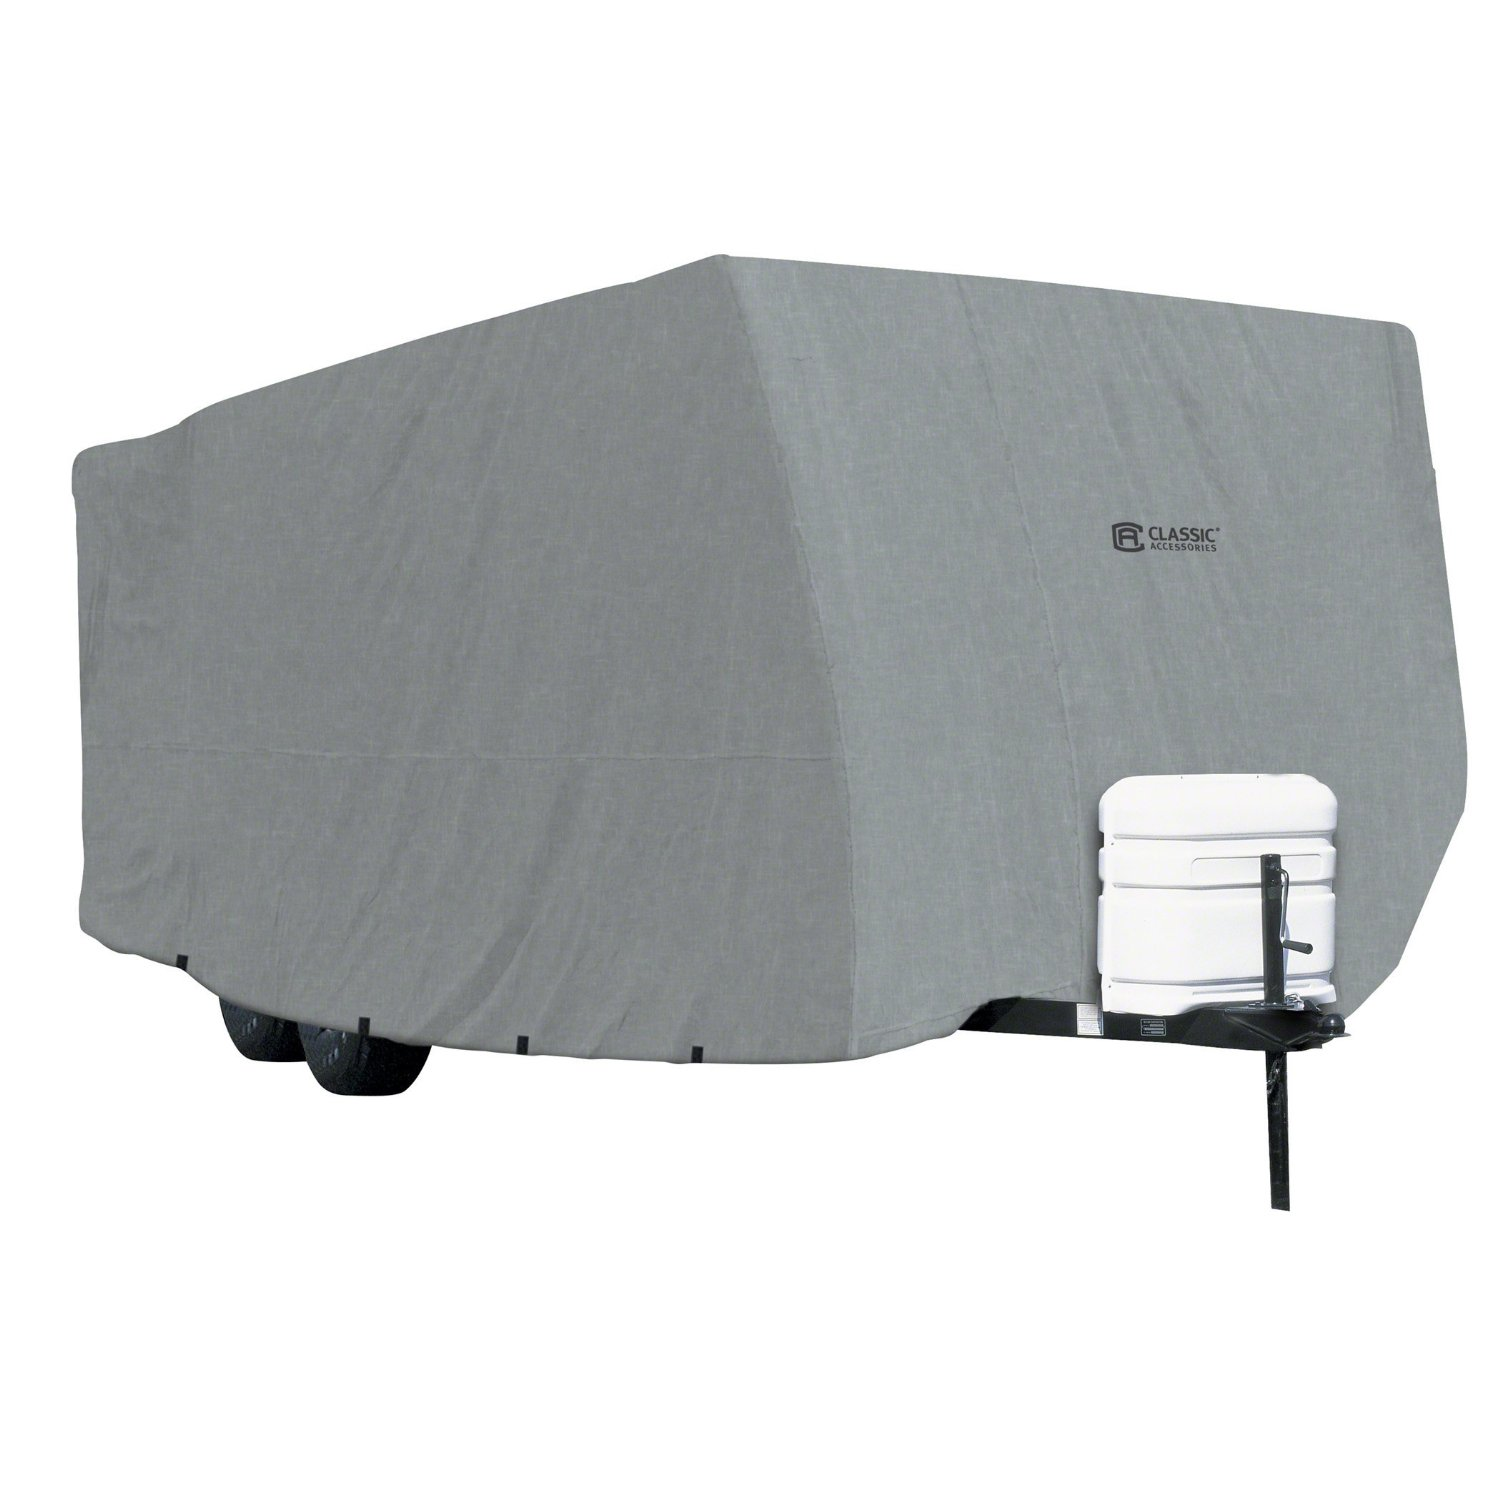 80-215-211001-00 Classic Accessories RV Cover For Travel Trailers